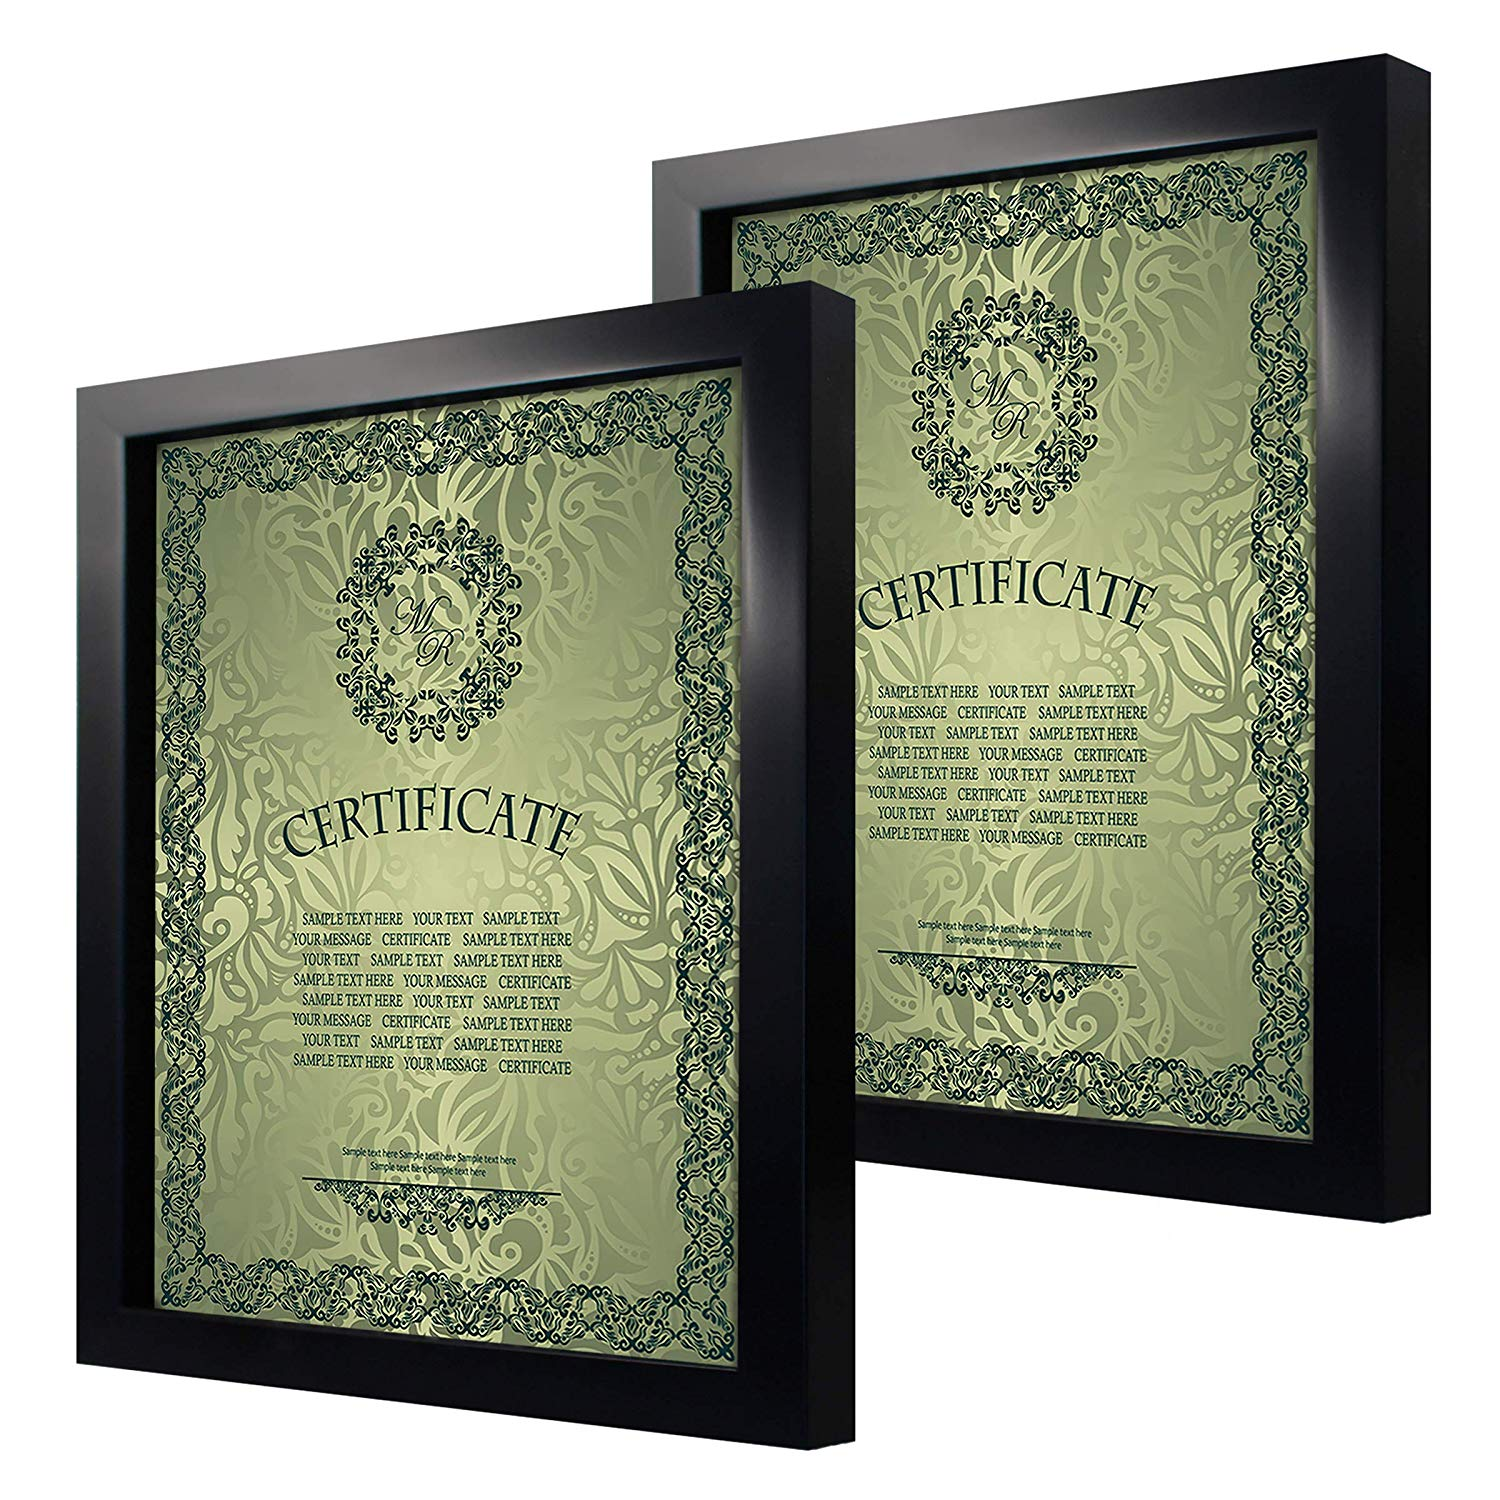 8.5x11 inch Black Picture Document Frame Made to Display Pictures or Certificate 8.5x11 Without Mat 2 Pack One Set for Wall & Tabletop Chirstmas Holiday Home Gift